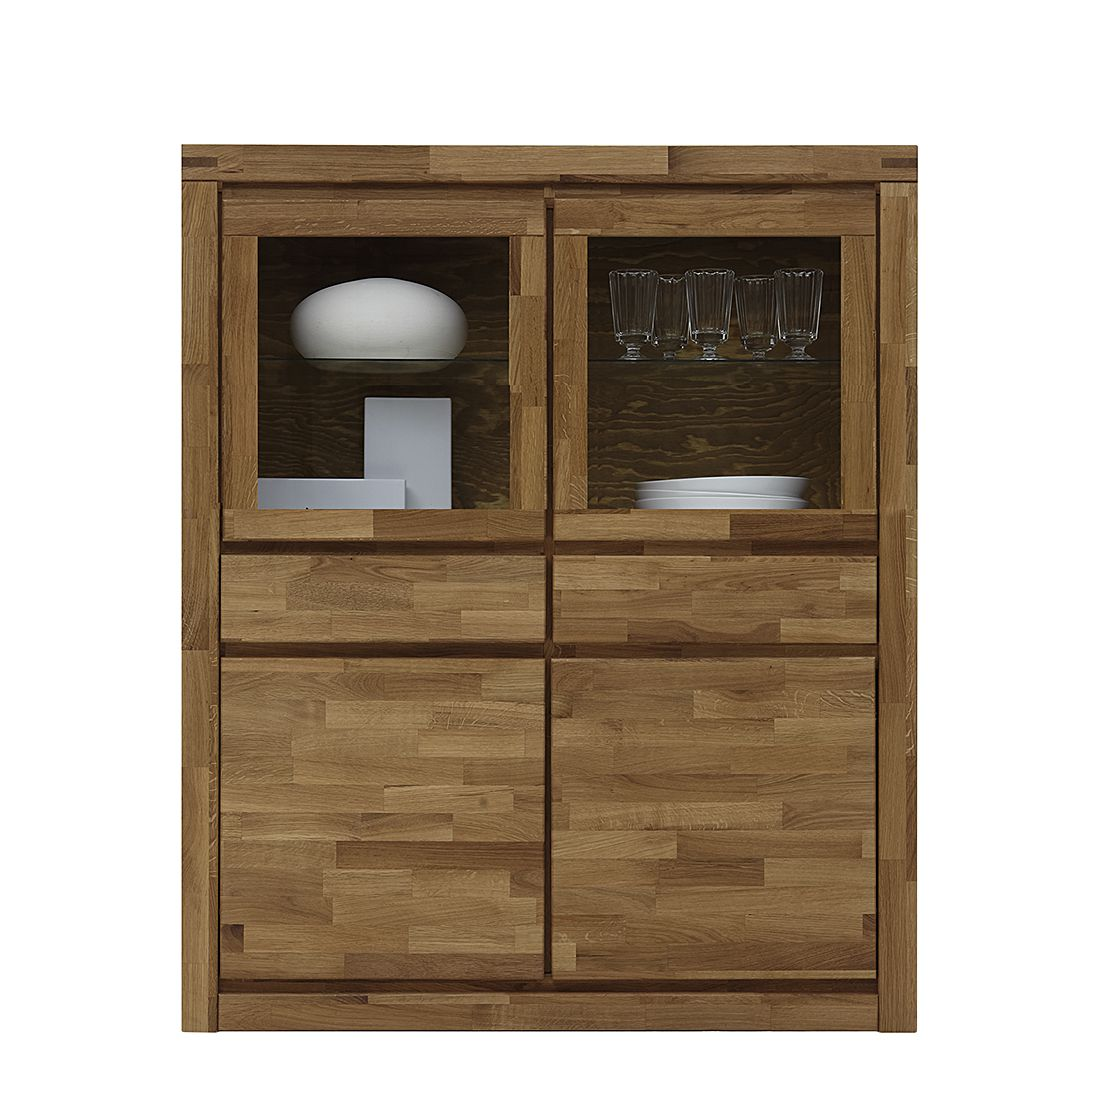 vitrine merle kerneiche massiv ge lt merle vitrine niedrig breit kerneiche massiv. Black Bedroom Furniture Sets. Home Design Ideas